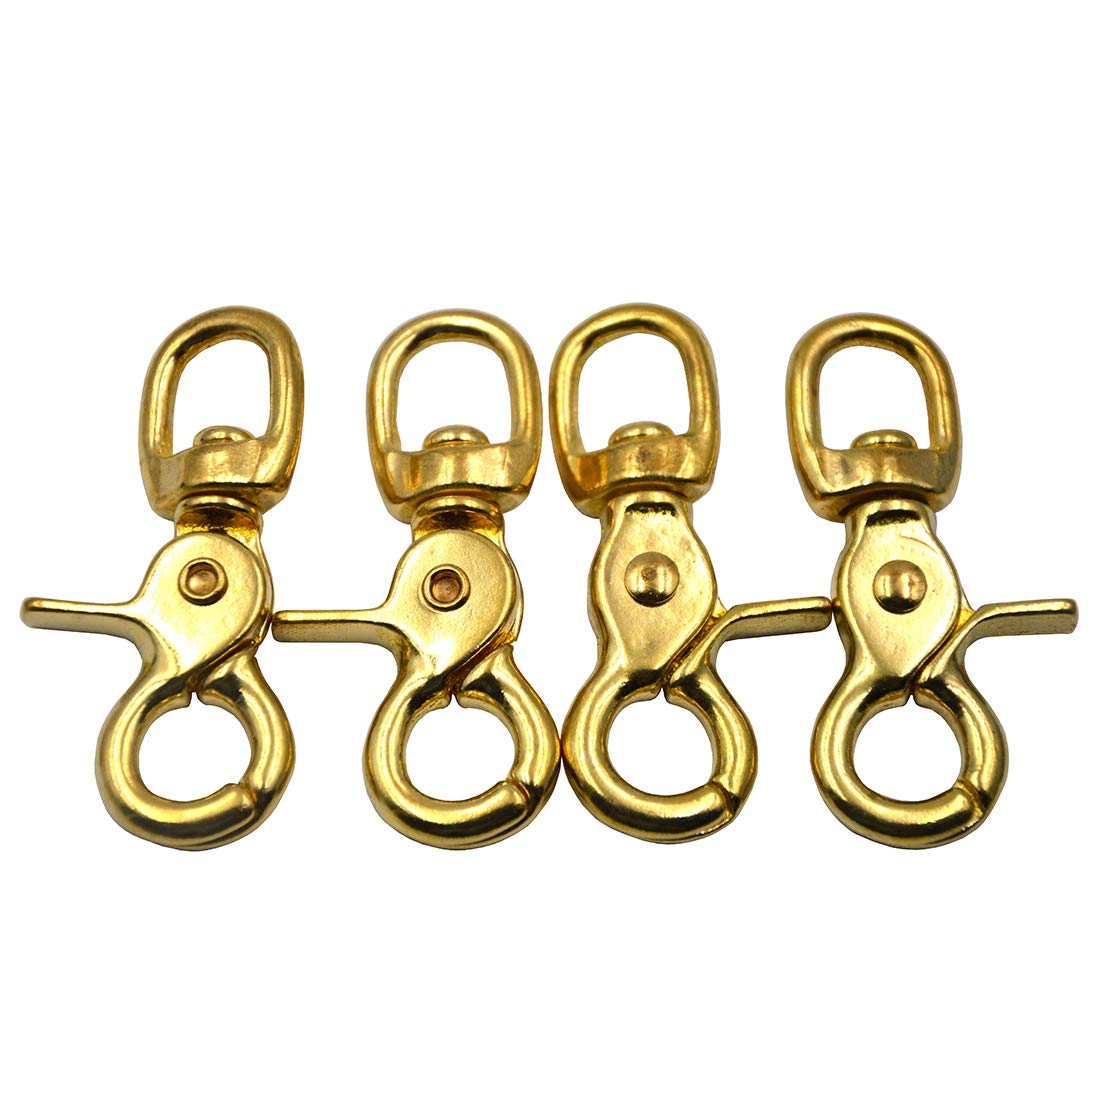 Antique Brass CRAFTMEmore Metal Swivel Trigger Lobster Clasp Purse Landyard Snap Hooks with 5//8 Base O Ring 1-7//8 L Pack of 4 Pick Color